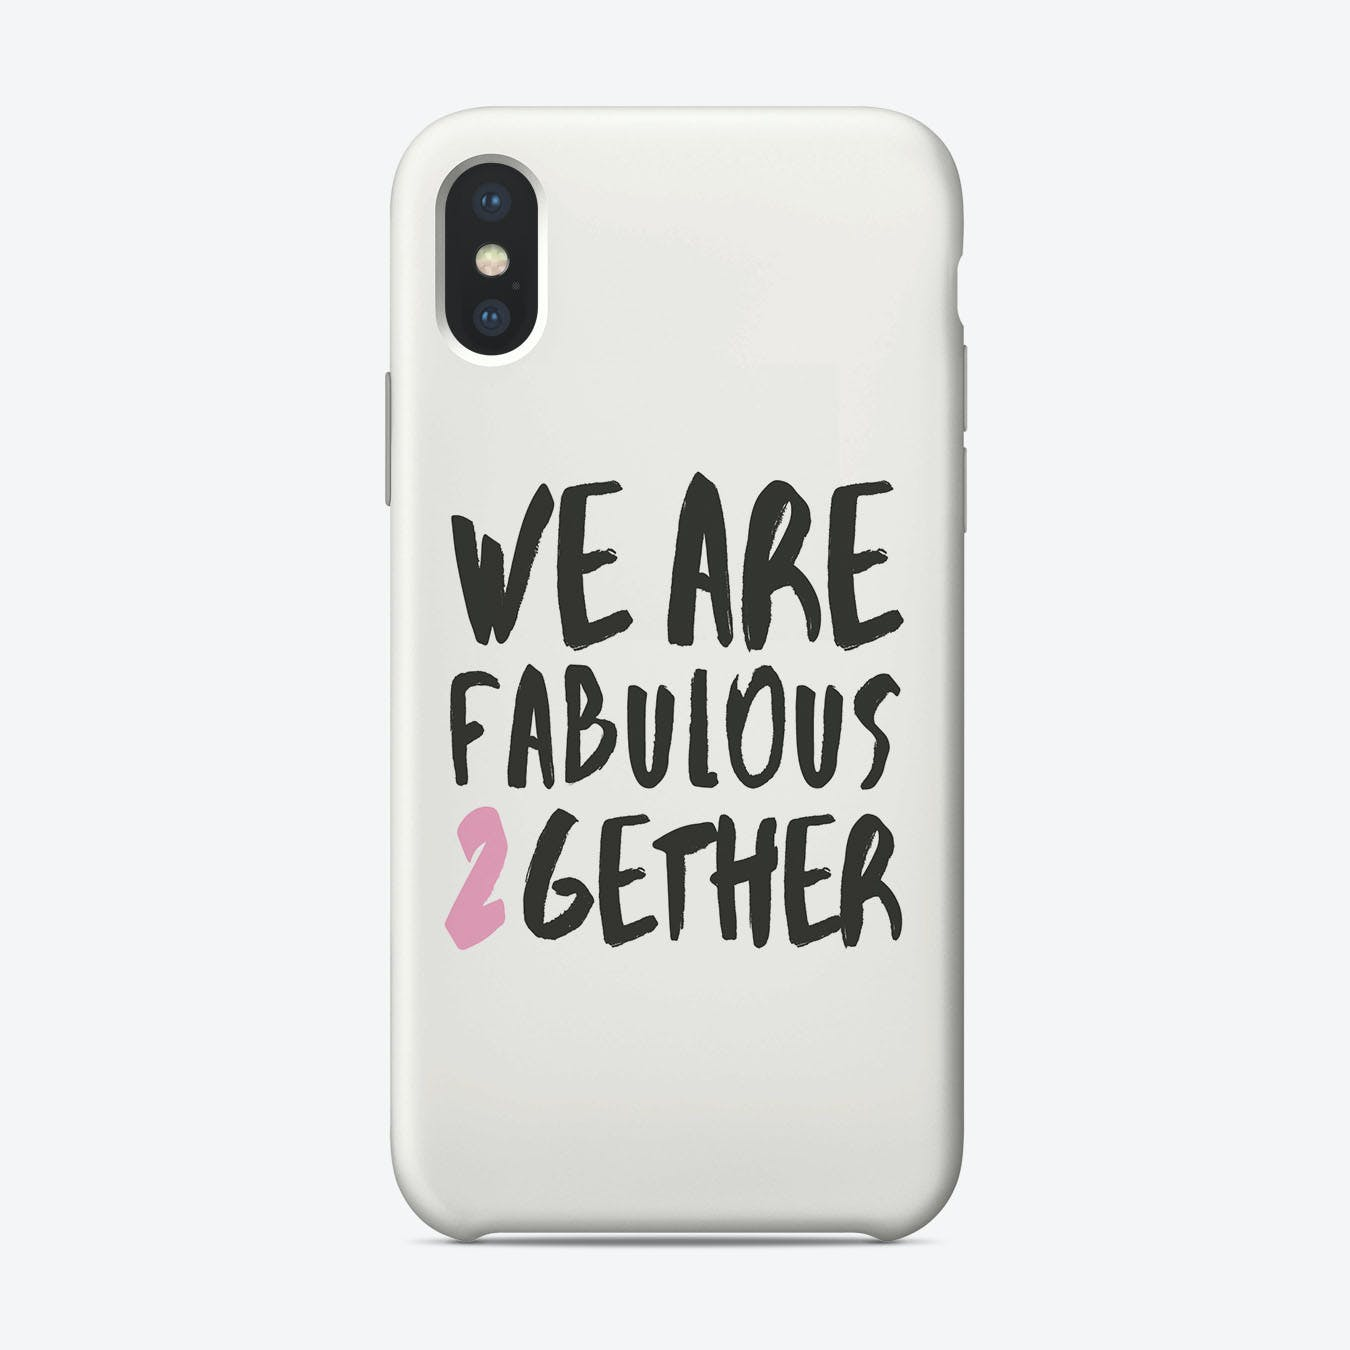 Fabulous Together iPhone Case